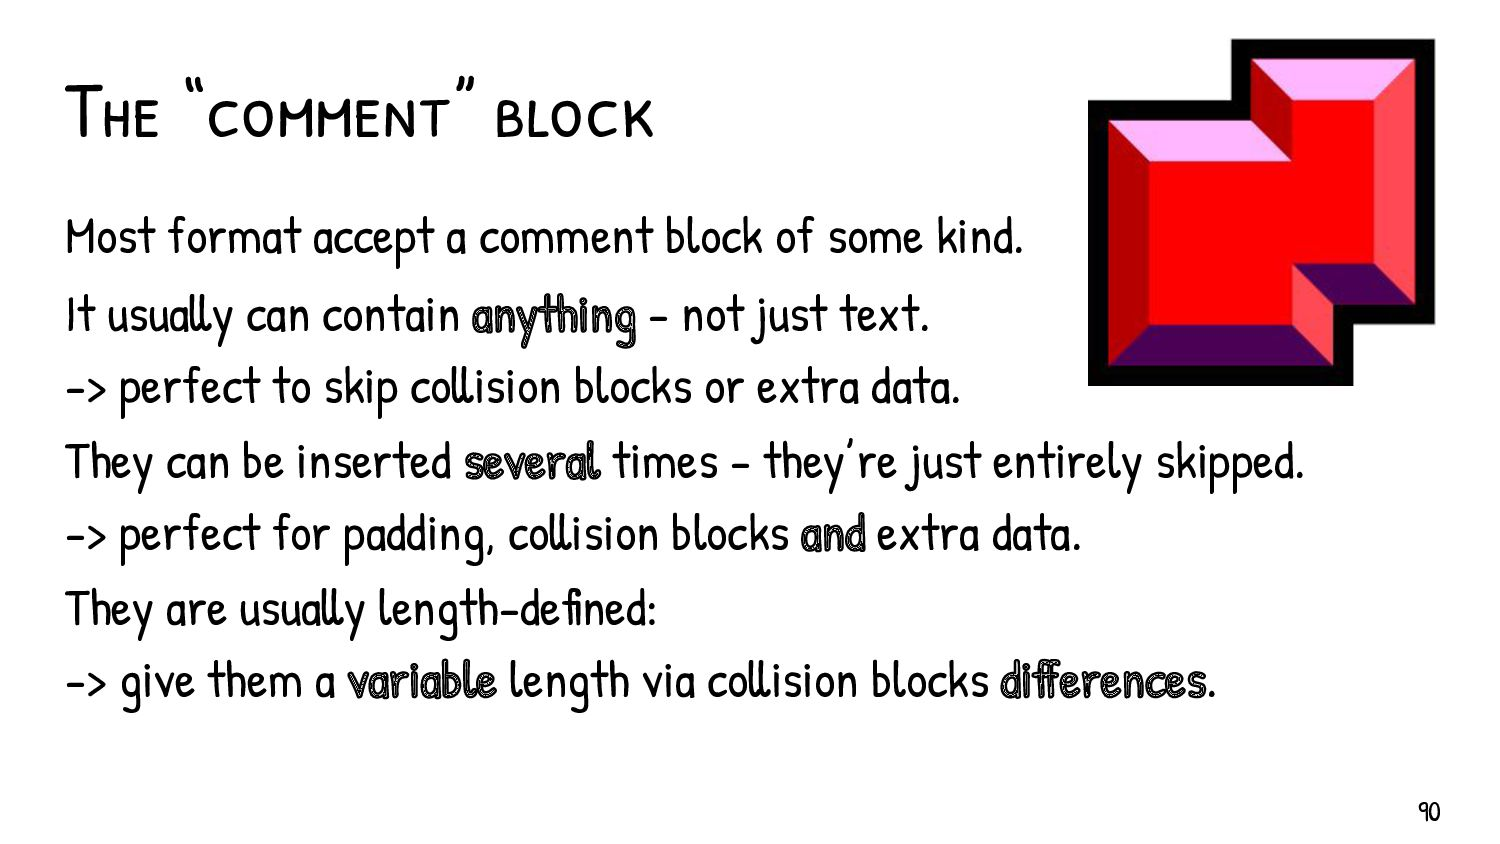 clues Robust parsers are 'detectives' Most files...